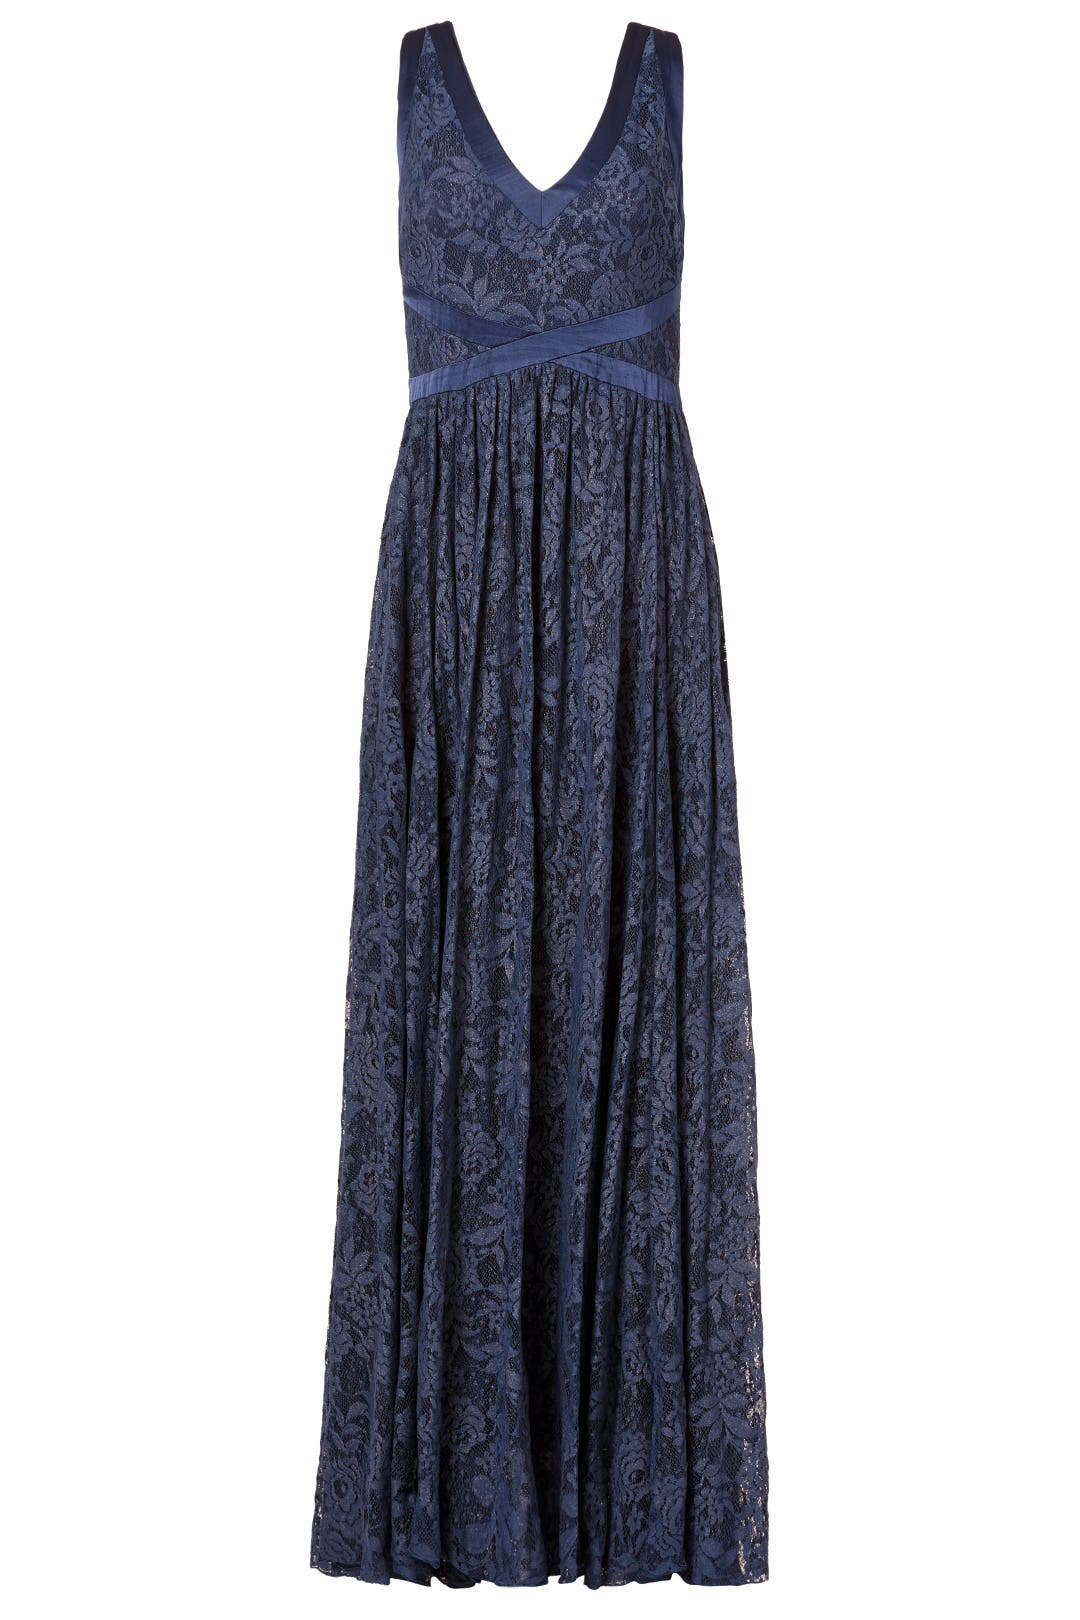 Set The Tone Gown by Badgley Mischka